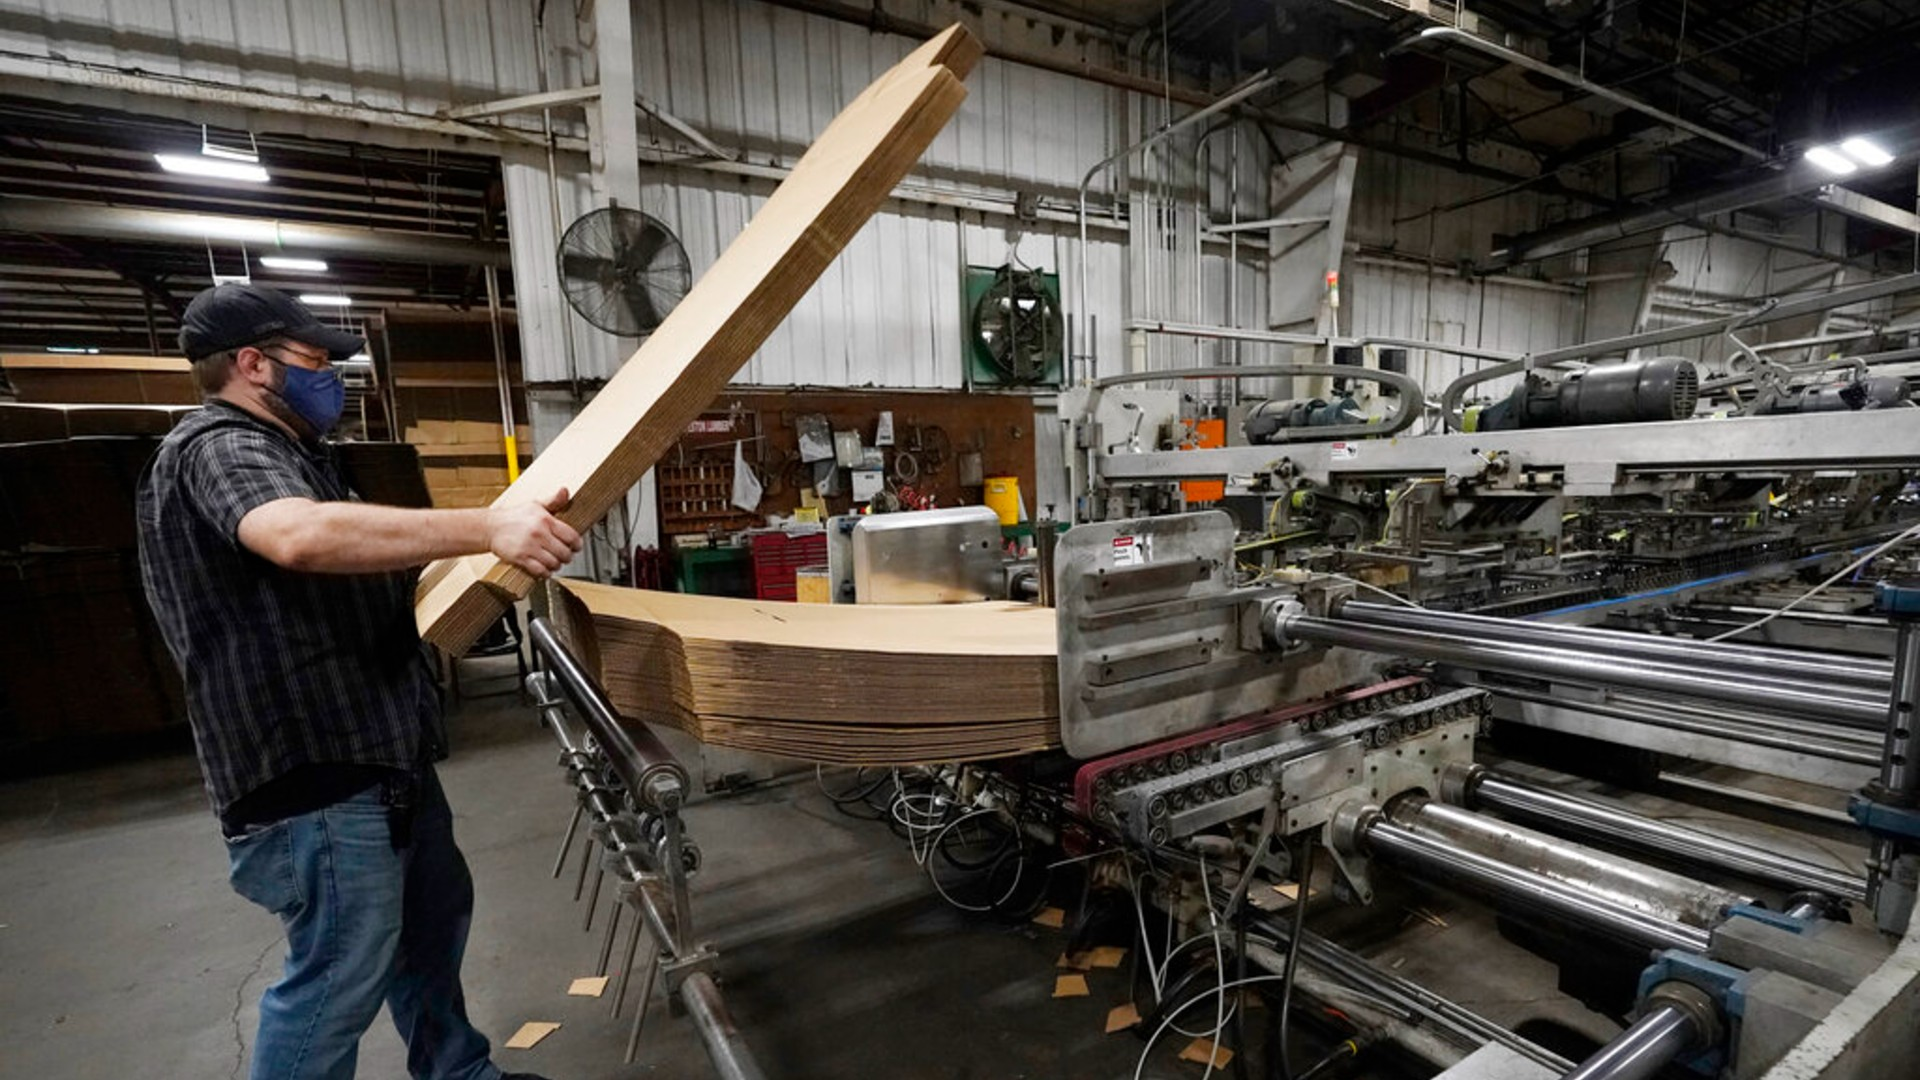 Rob Bondurant, a supervisor at Great Southern Industries, a packaging company, loads up a finishing machine in the Jackson, Miss., facility, Friday, May 28, 2021. (AP Photo/Rogelio V. Solis)